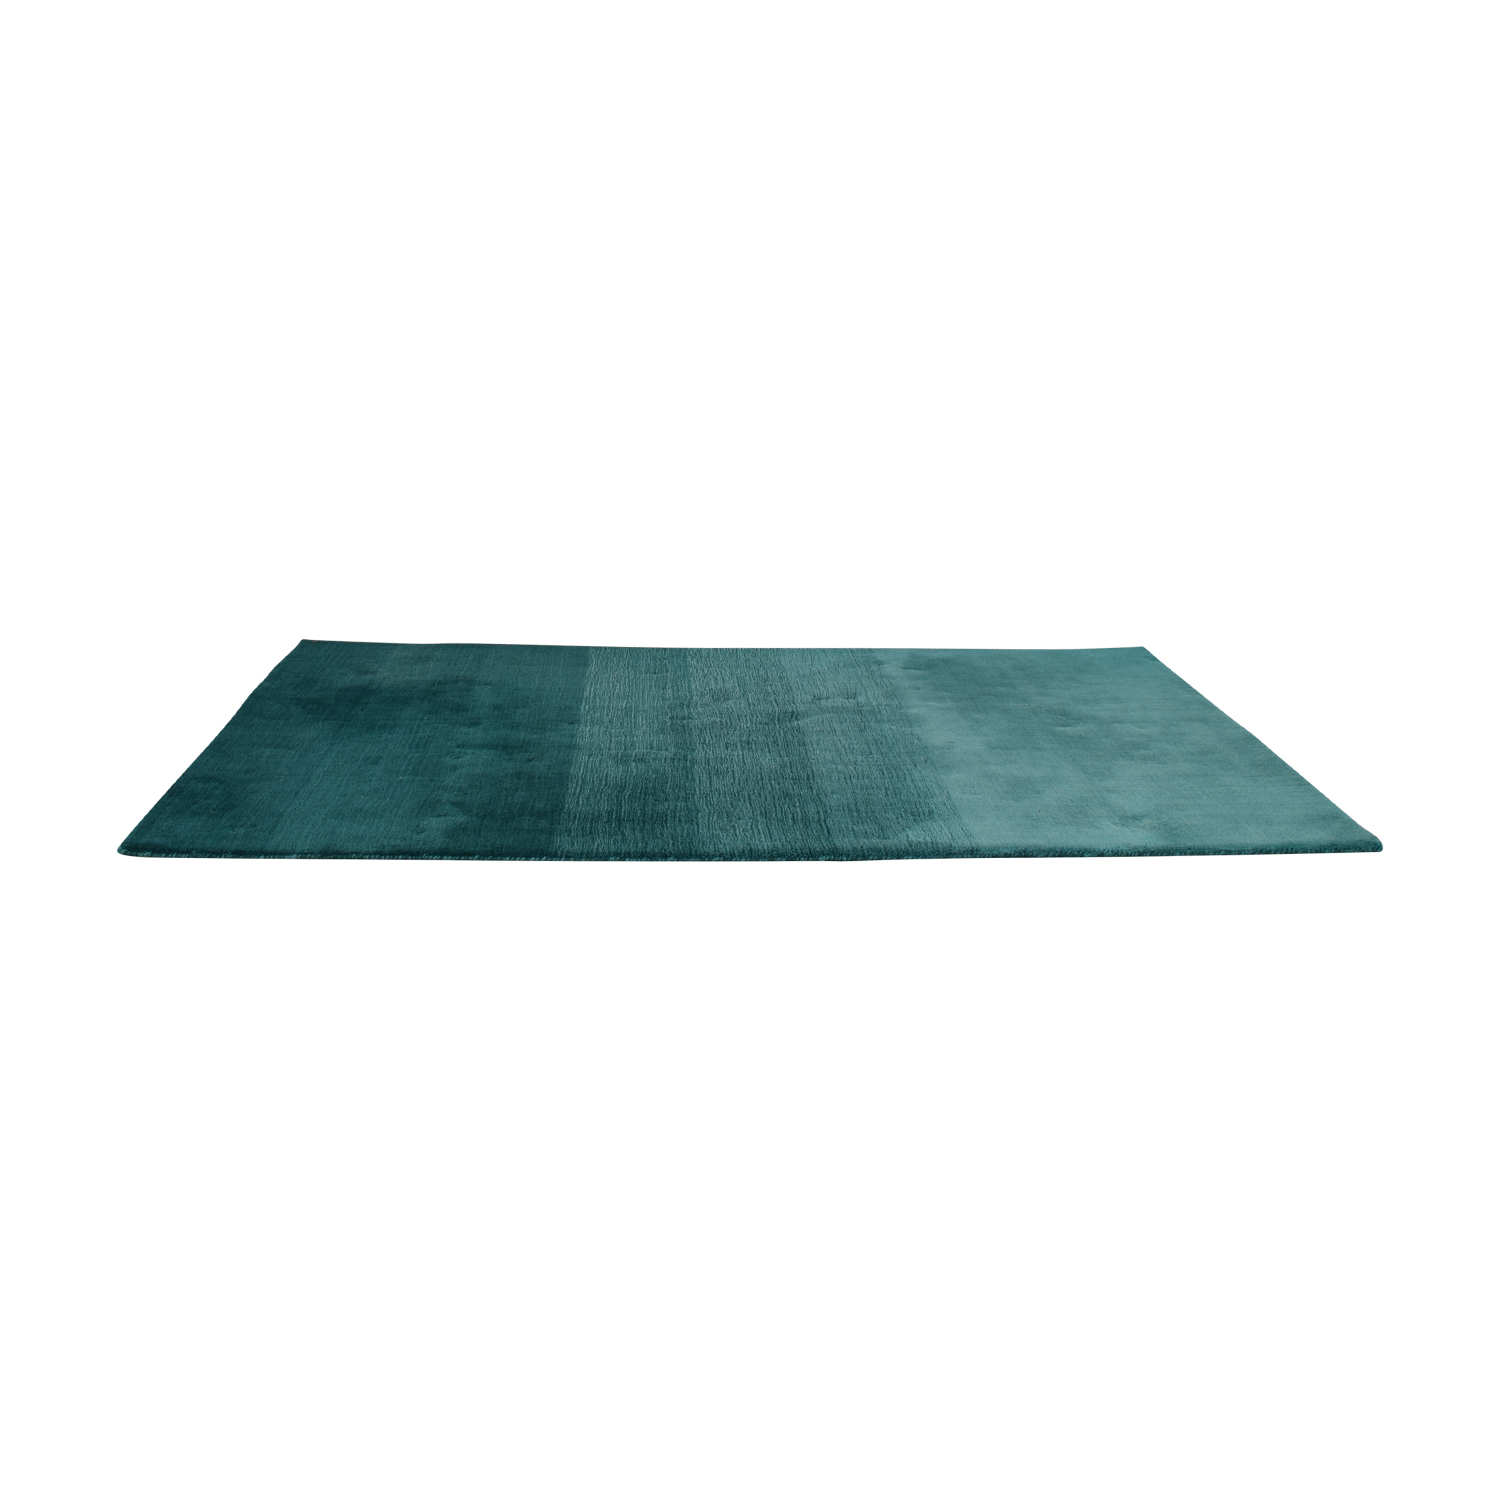 CB2 CB2 Ombre Teal Rug Decor